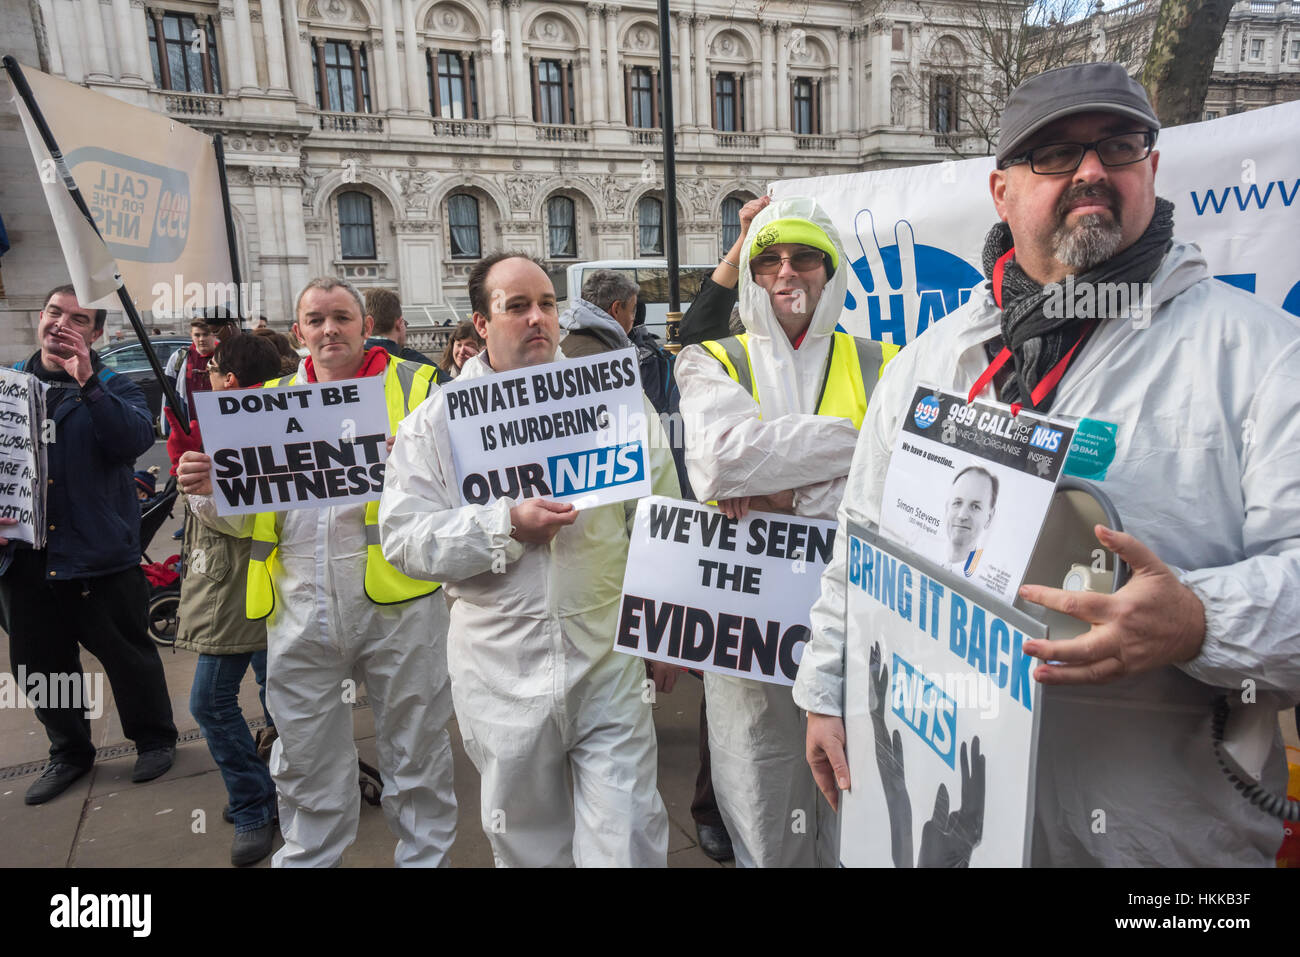 London, UK. 28th January, 2017. Protesters in white suits hold posters at the rally at the Dept of Health. The Sustainability - Stock Image